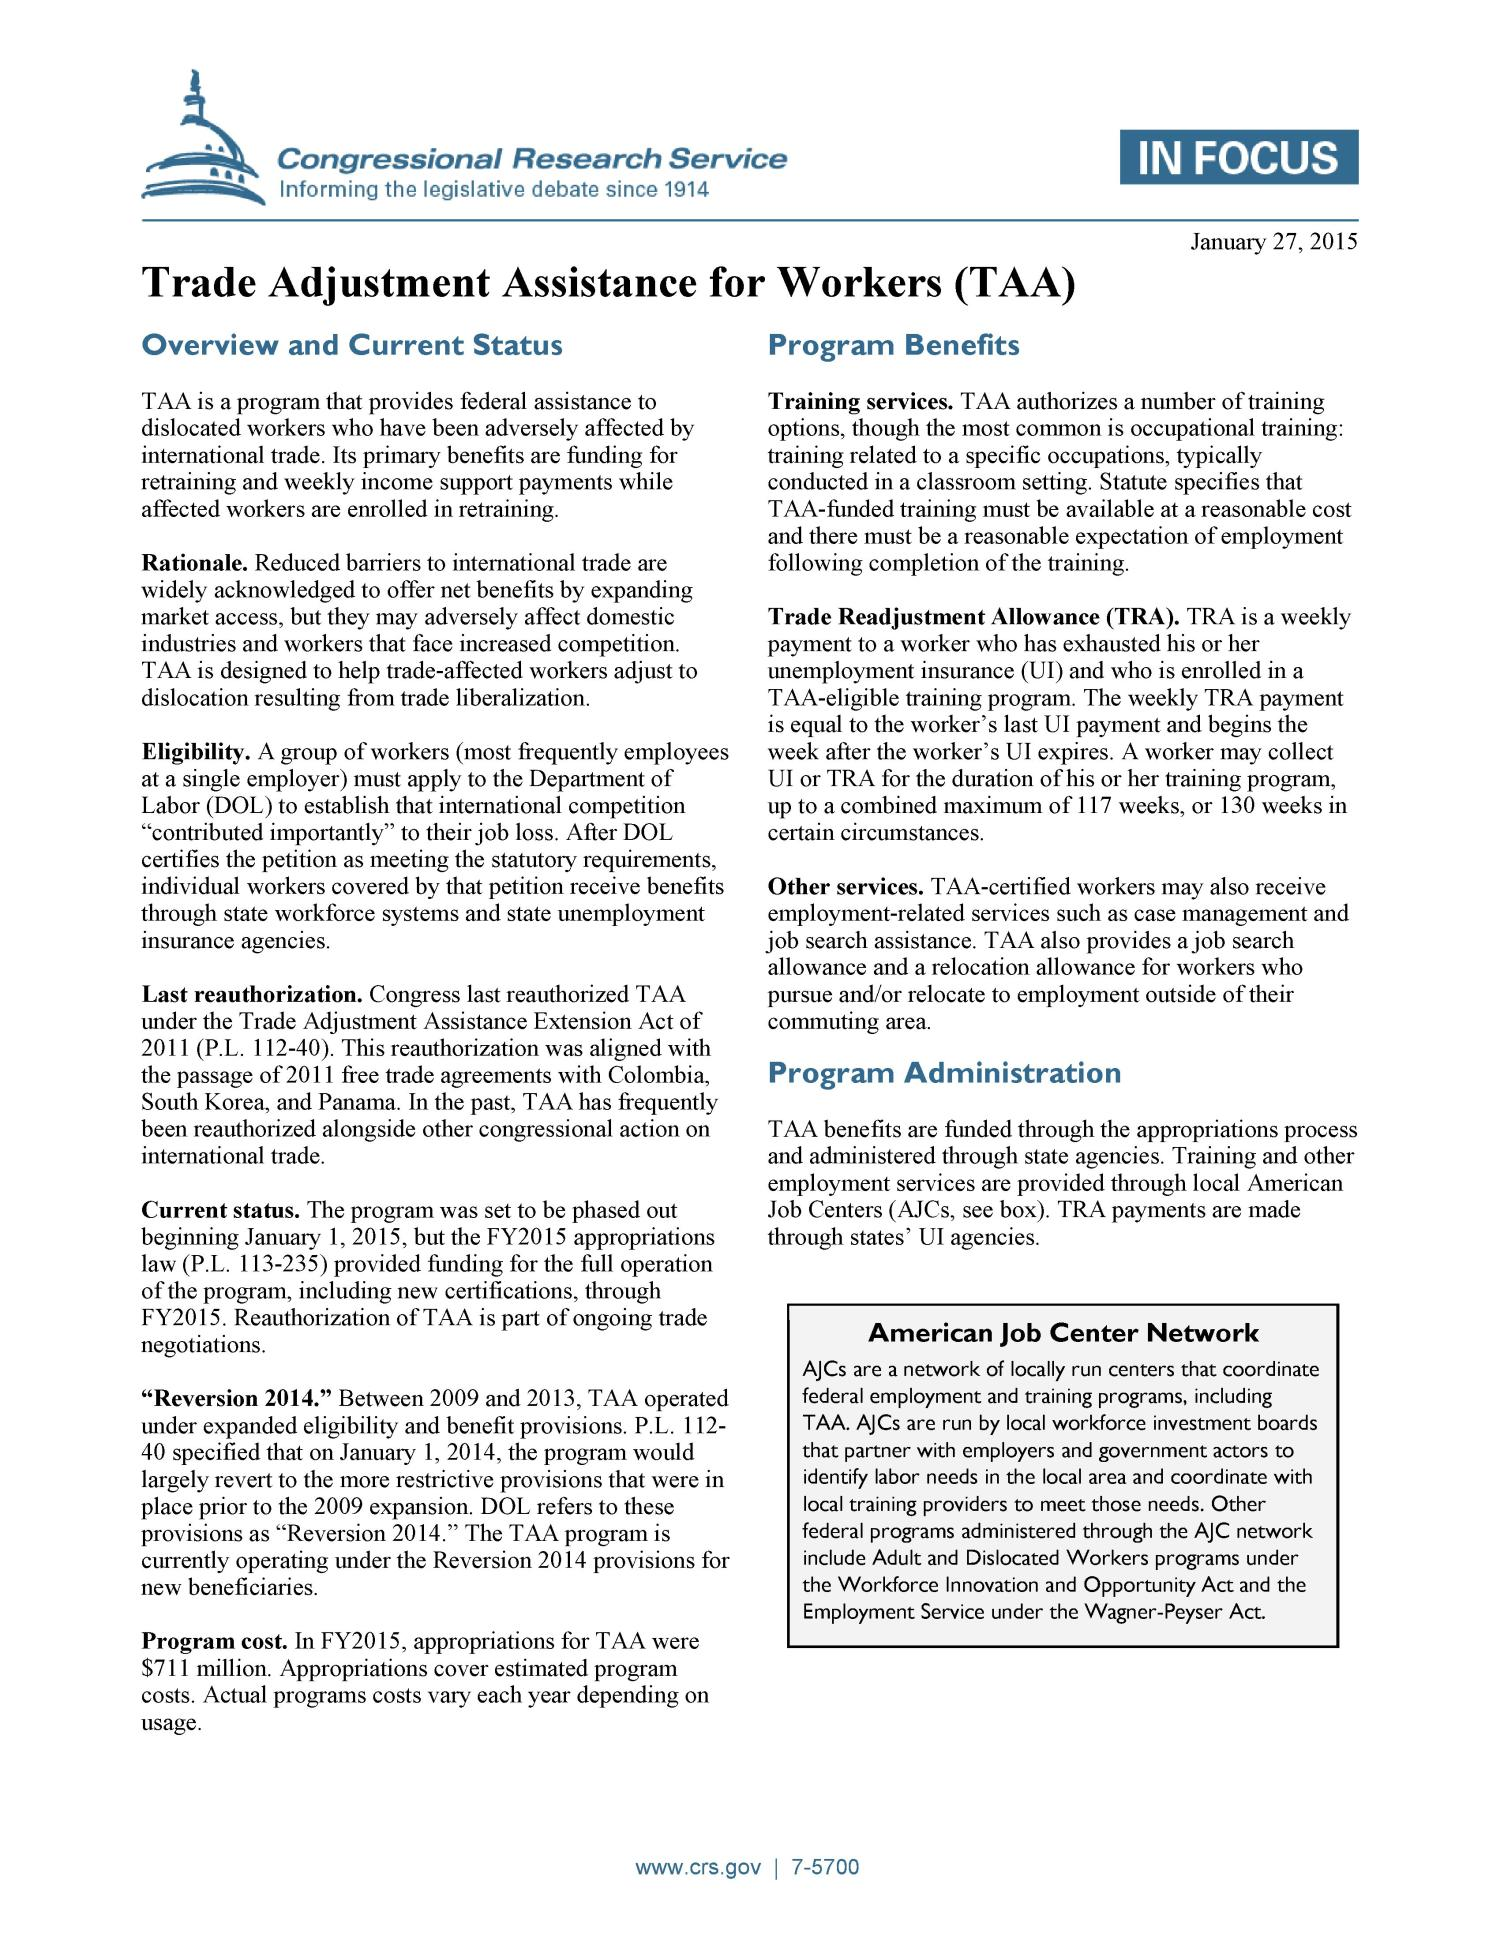 Trade Adjustment Assistance For Workers Taa Digital Library